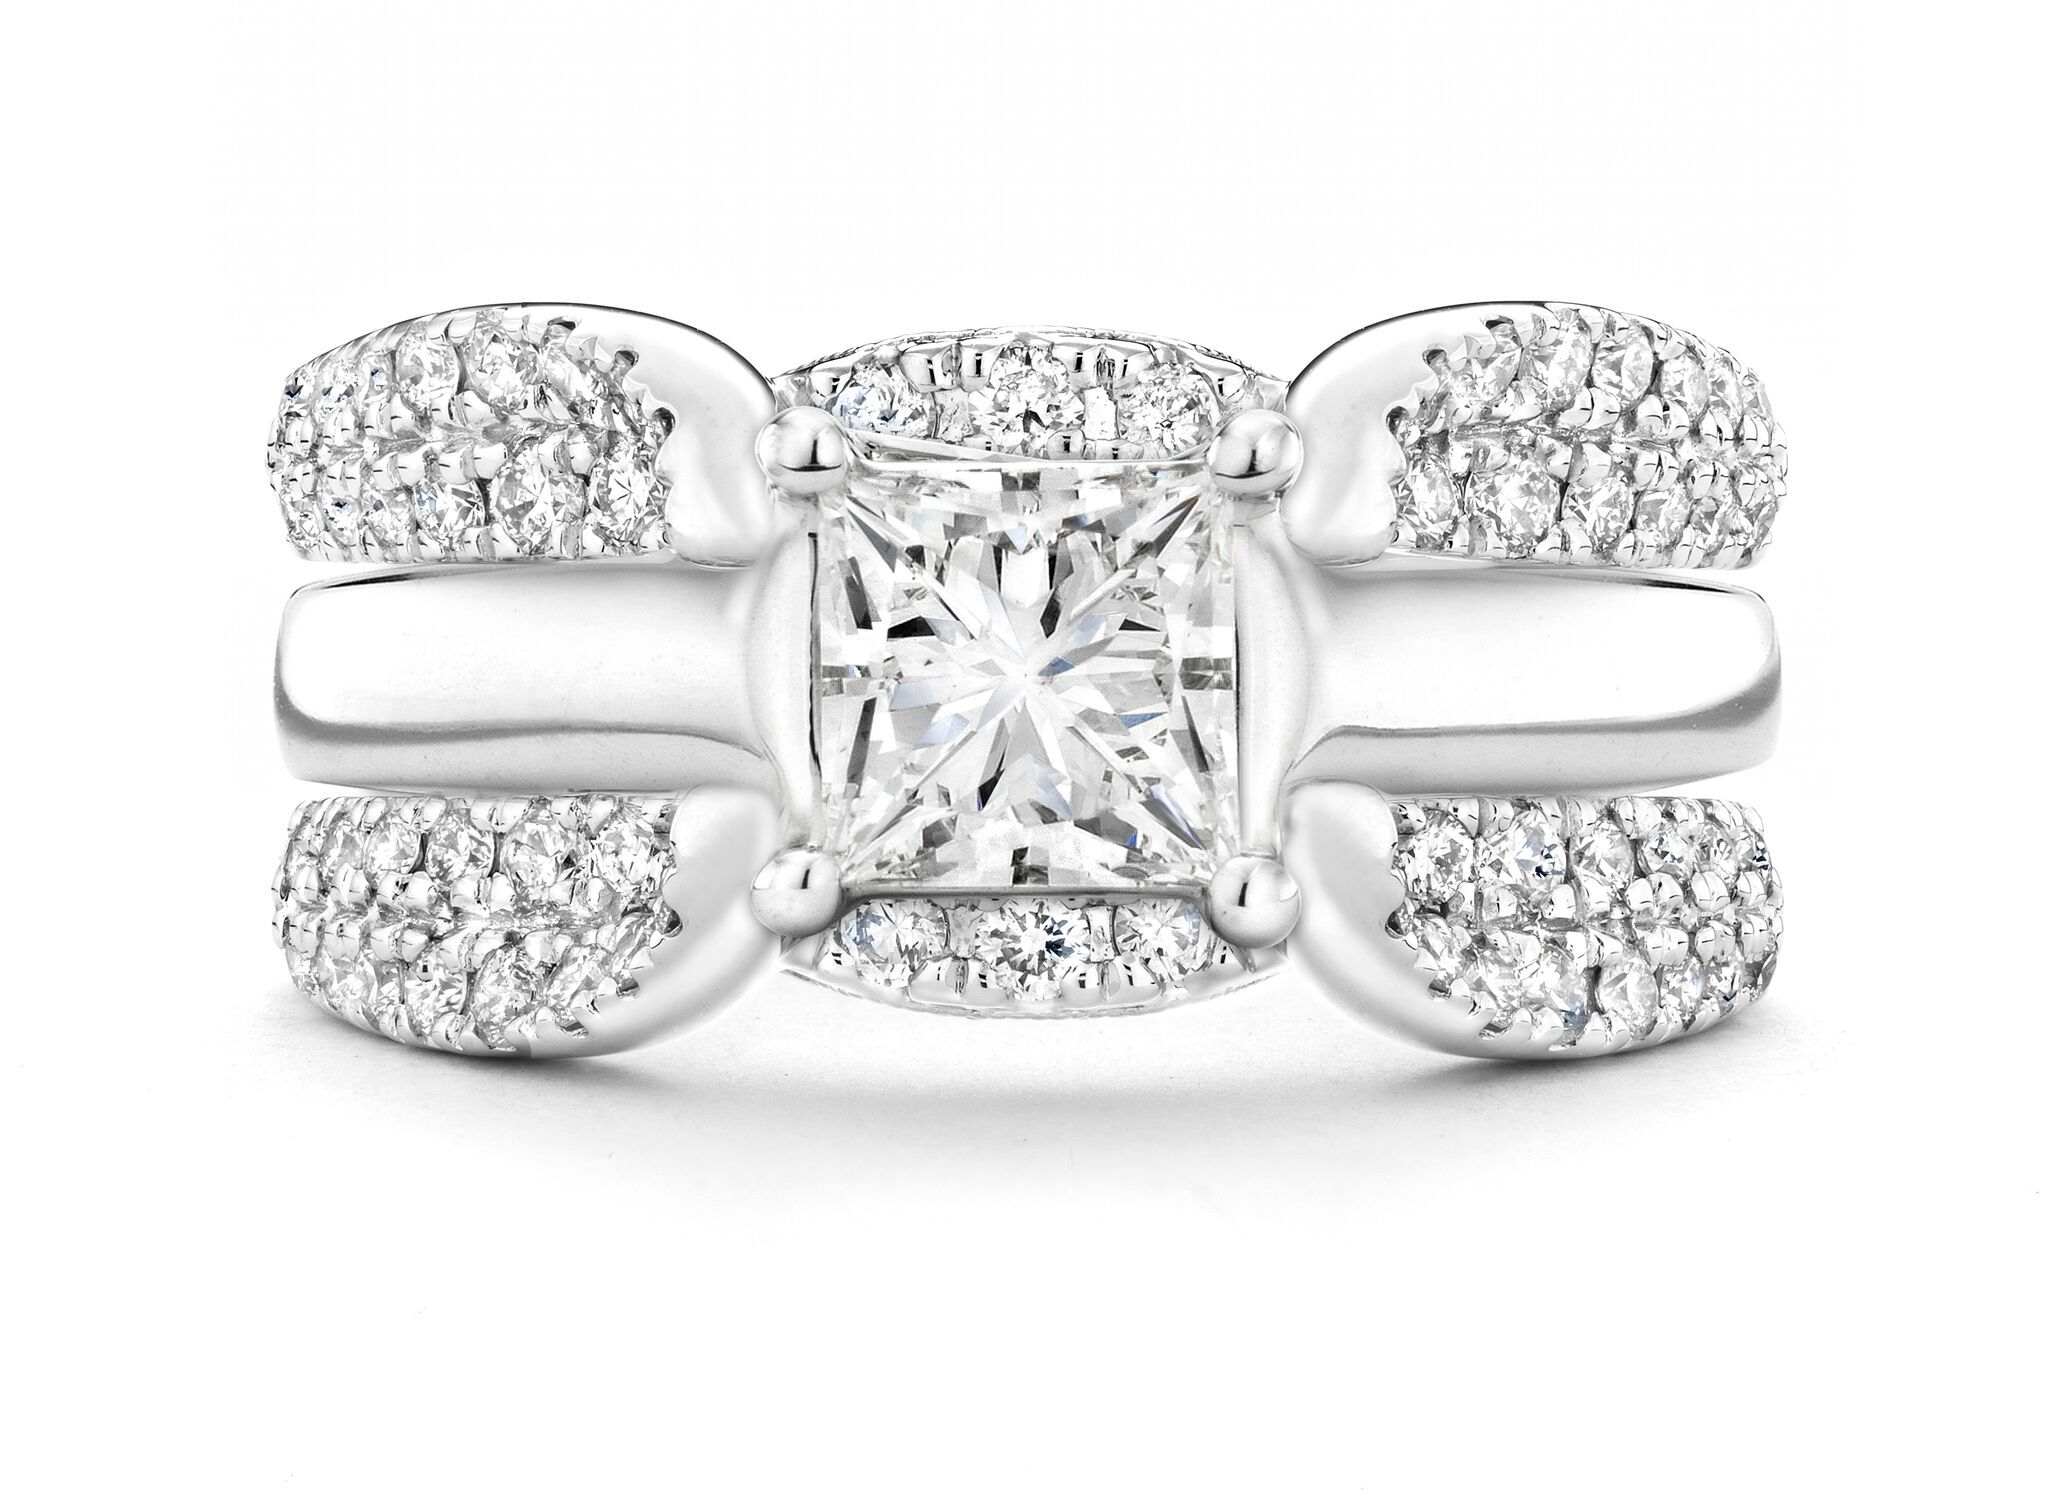 weddingbee wedding tolkowsky of rings ring engagement sets beautiful under